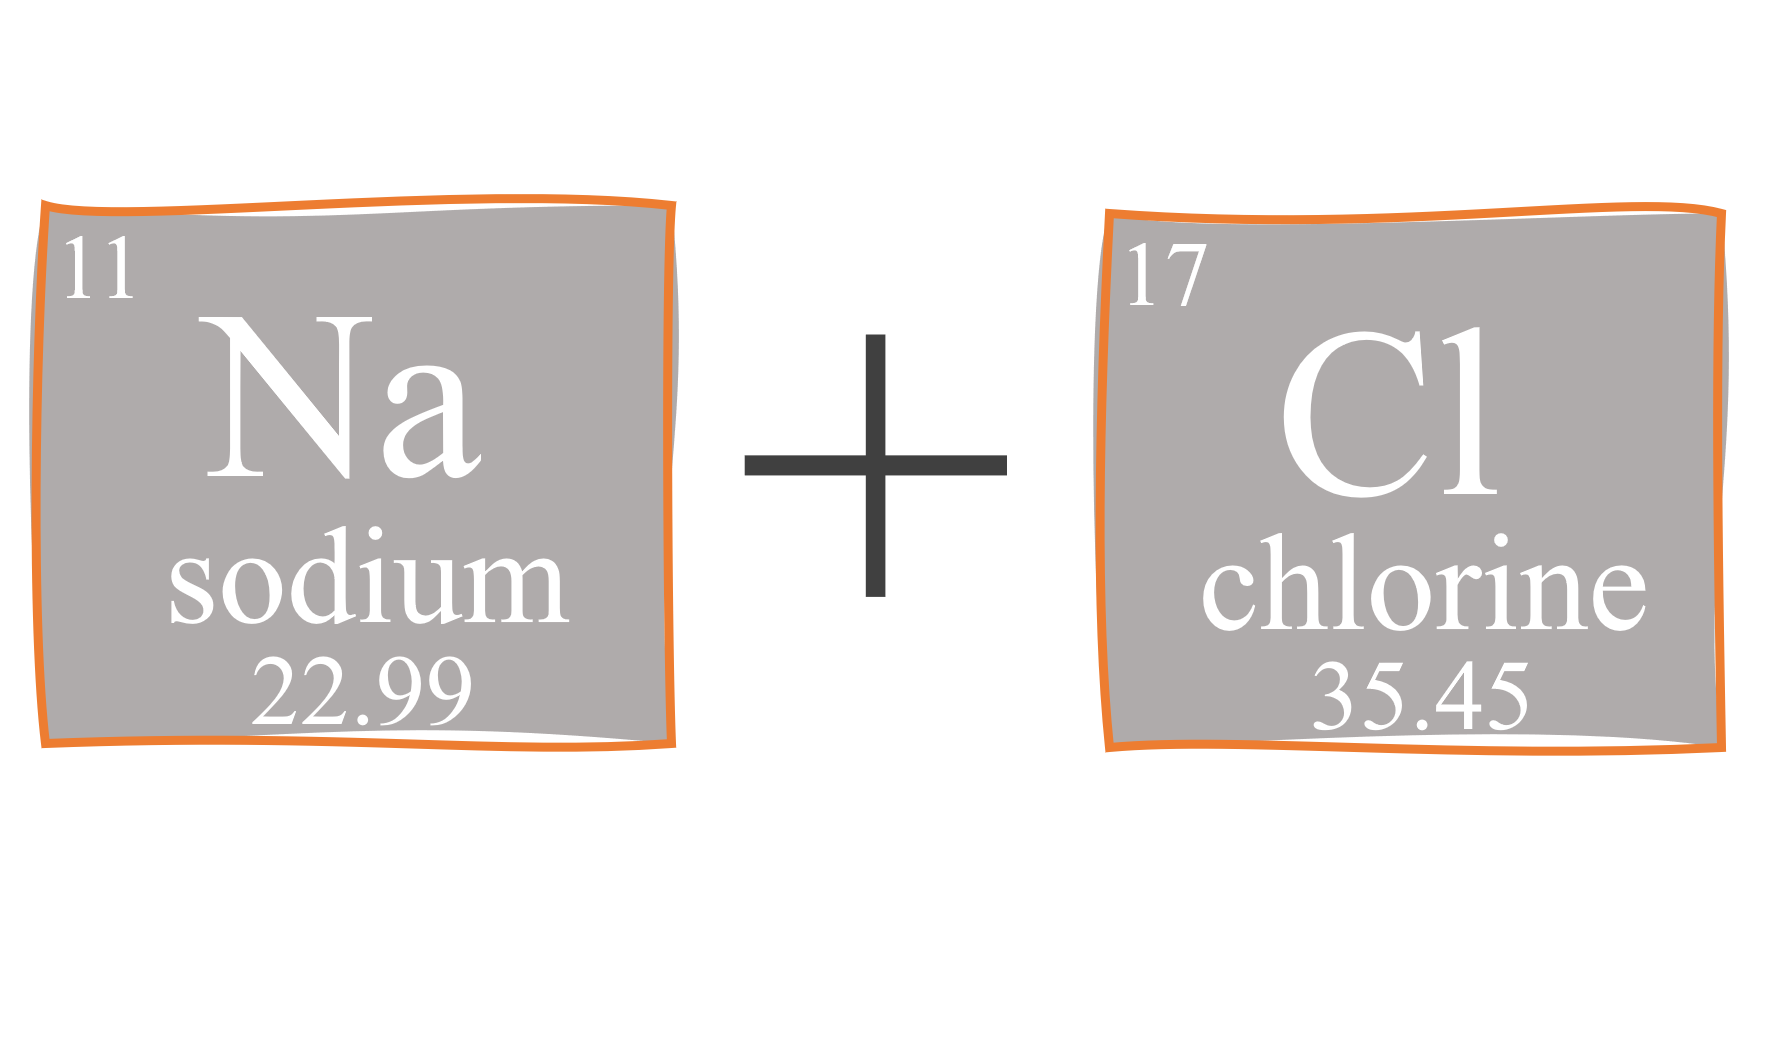 molar mass of NaCl is Na + Cl